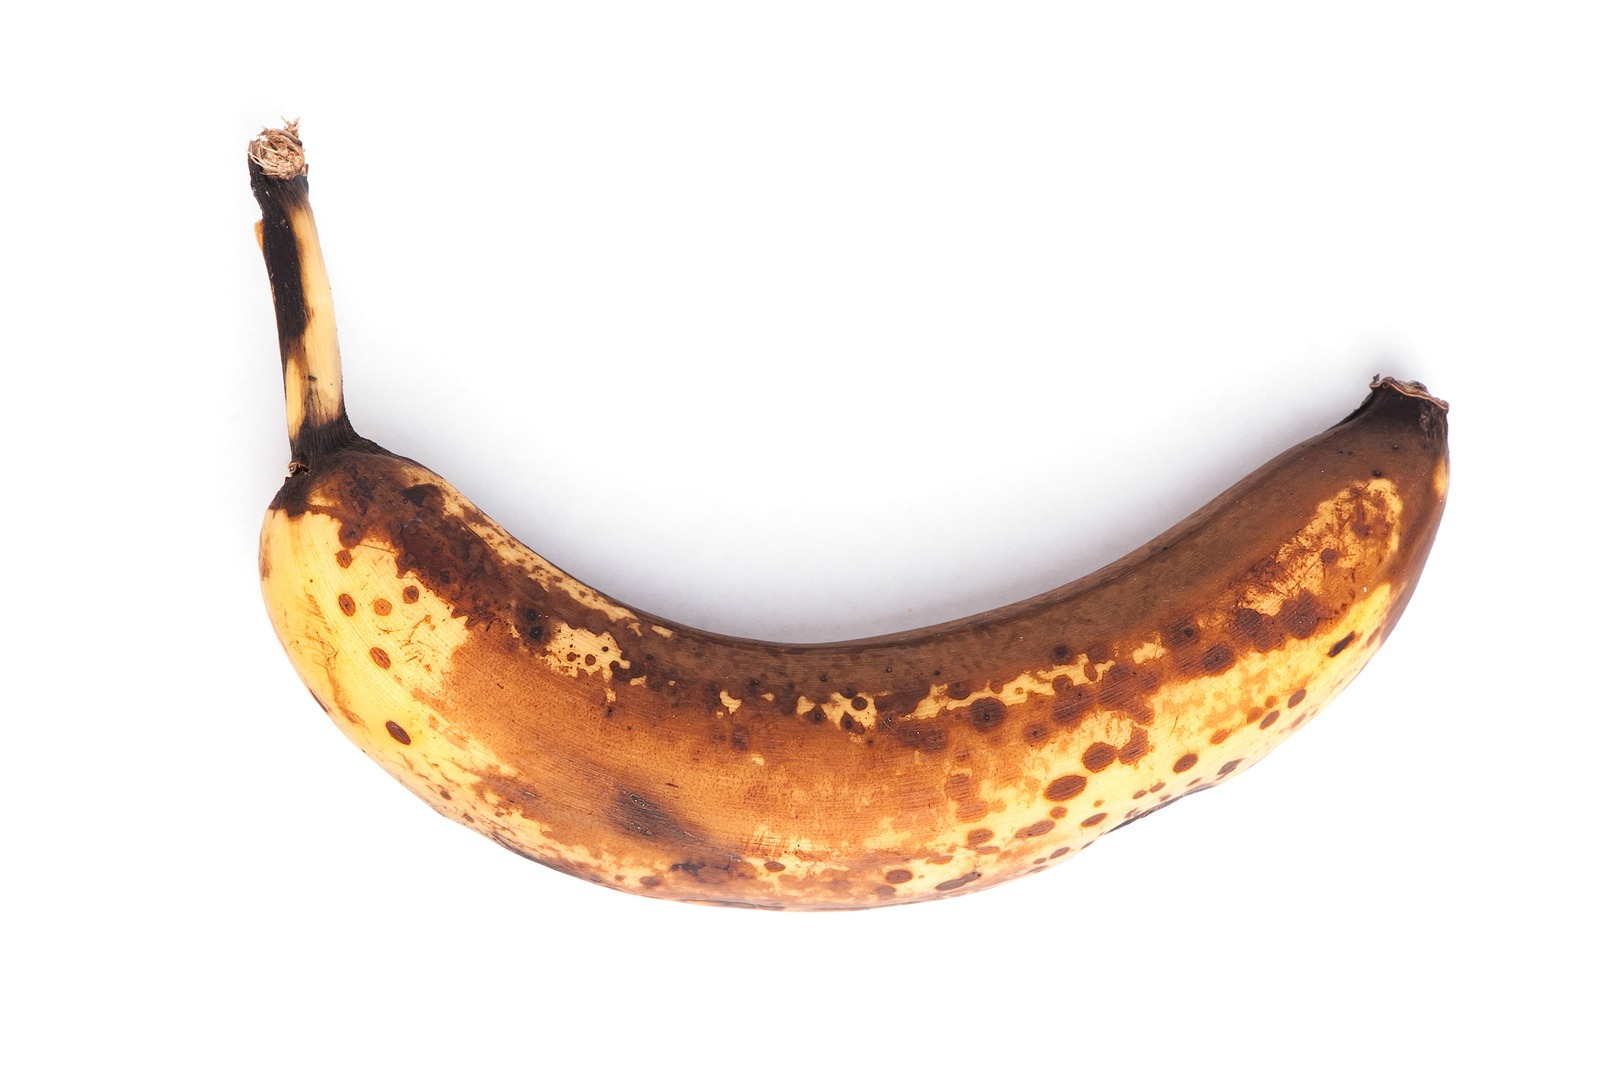 Don't bin those over ripe bananas - put them in a cake or smoothie!